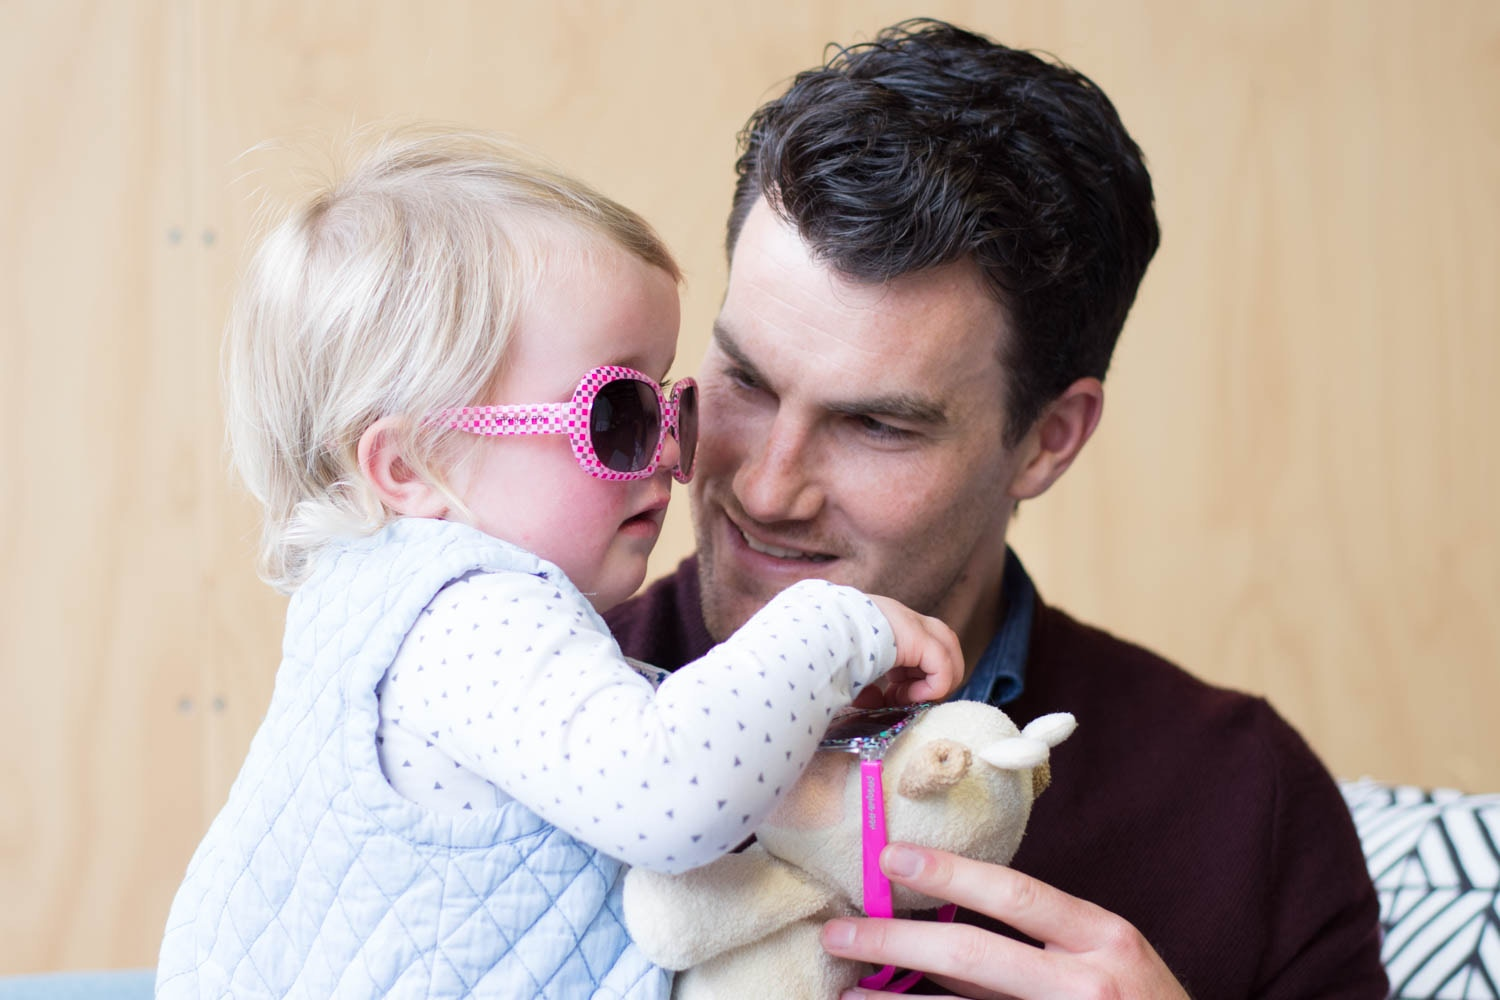 Adam Kavanagh on what it means to be a Dad